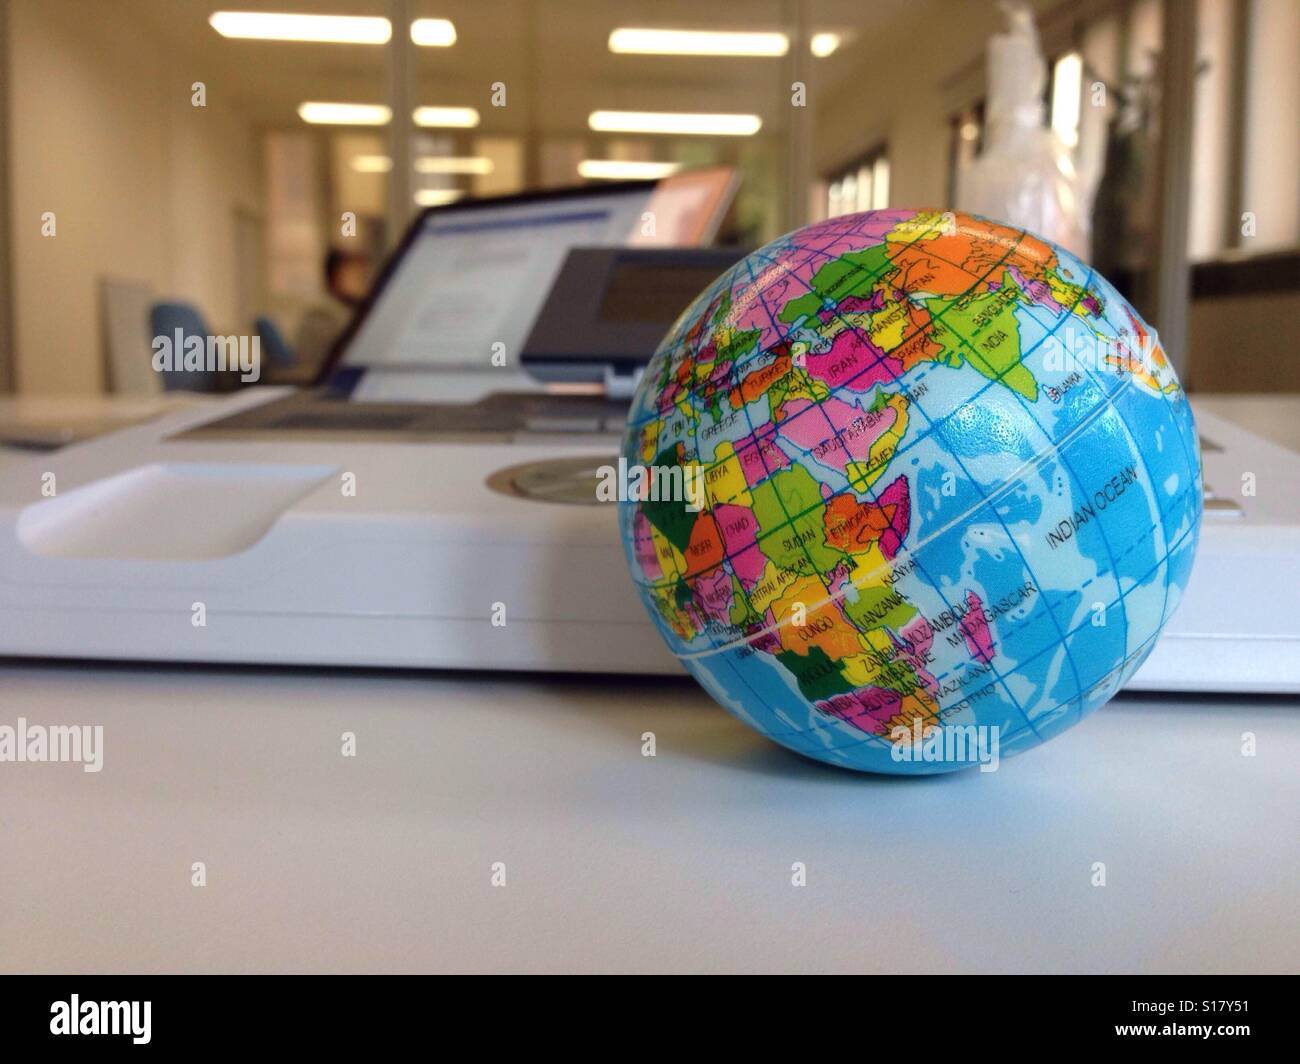 World Globe On An Office Desk, With Telephone And Laptop In Background